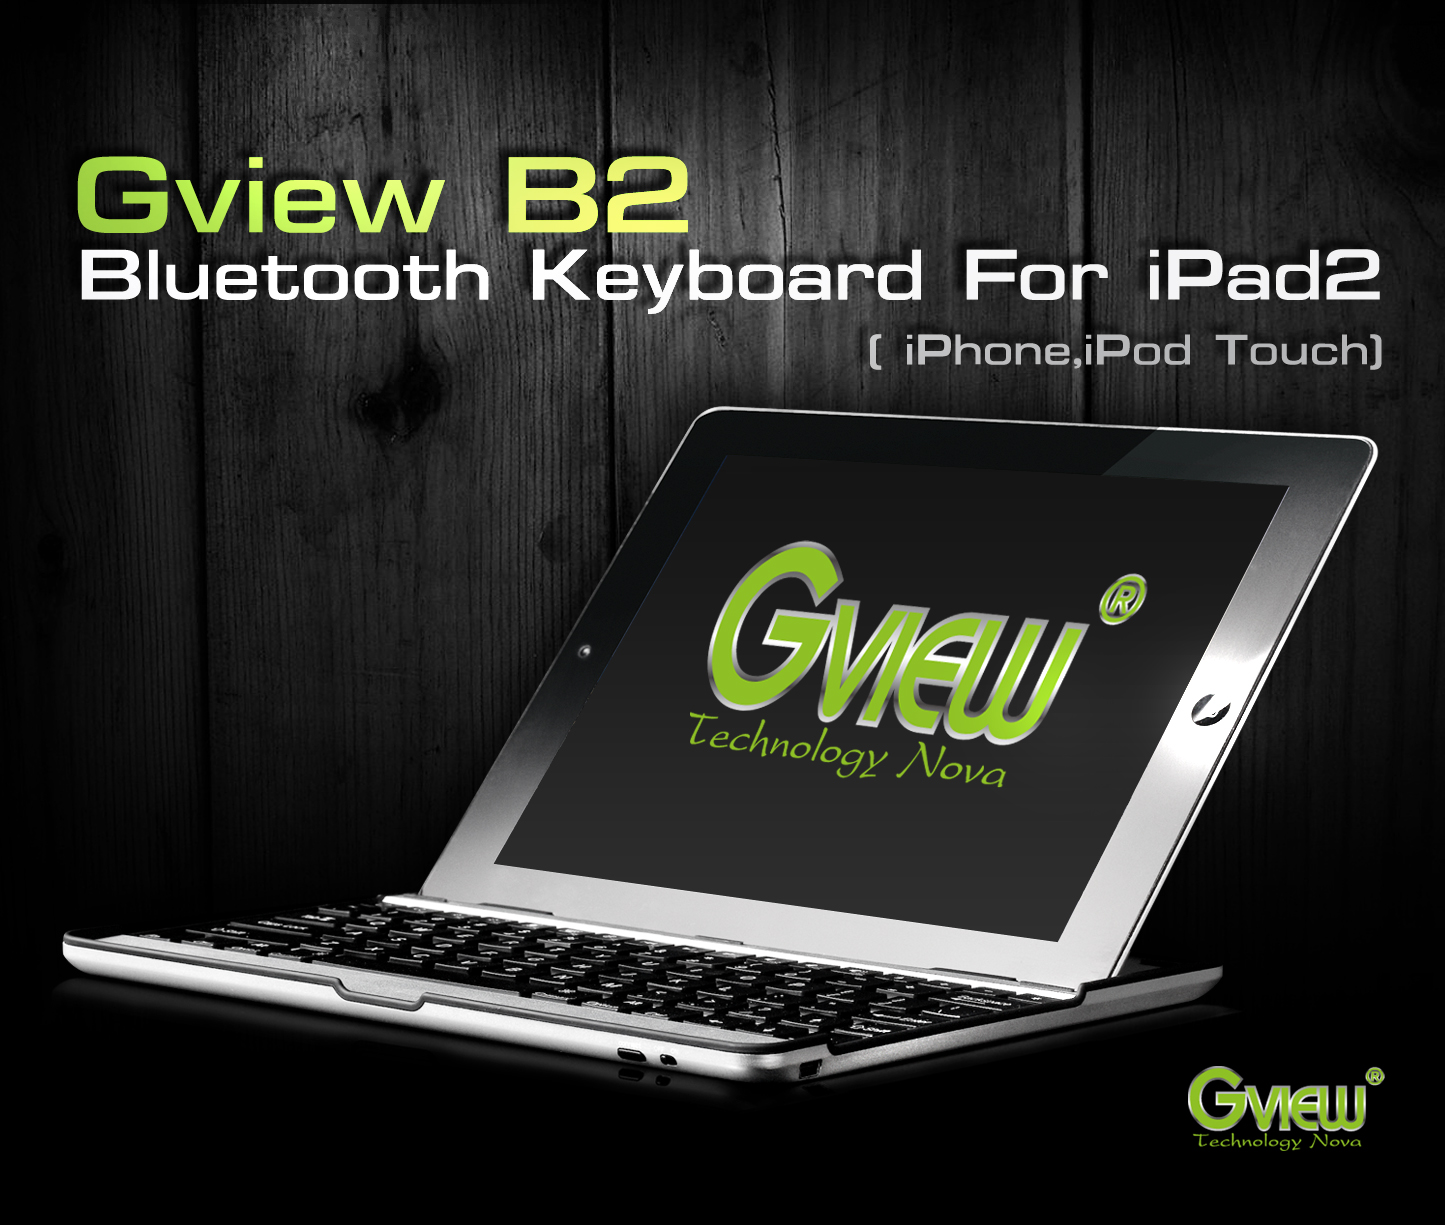 Gview B2 Bluetooth Keyboard for iPad2